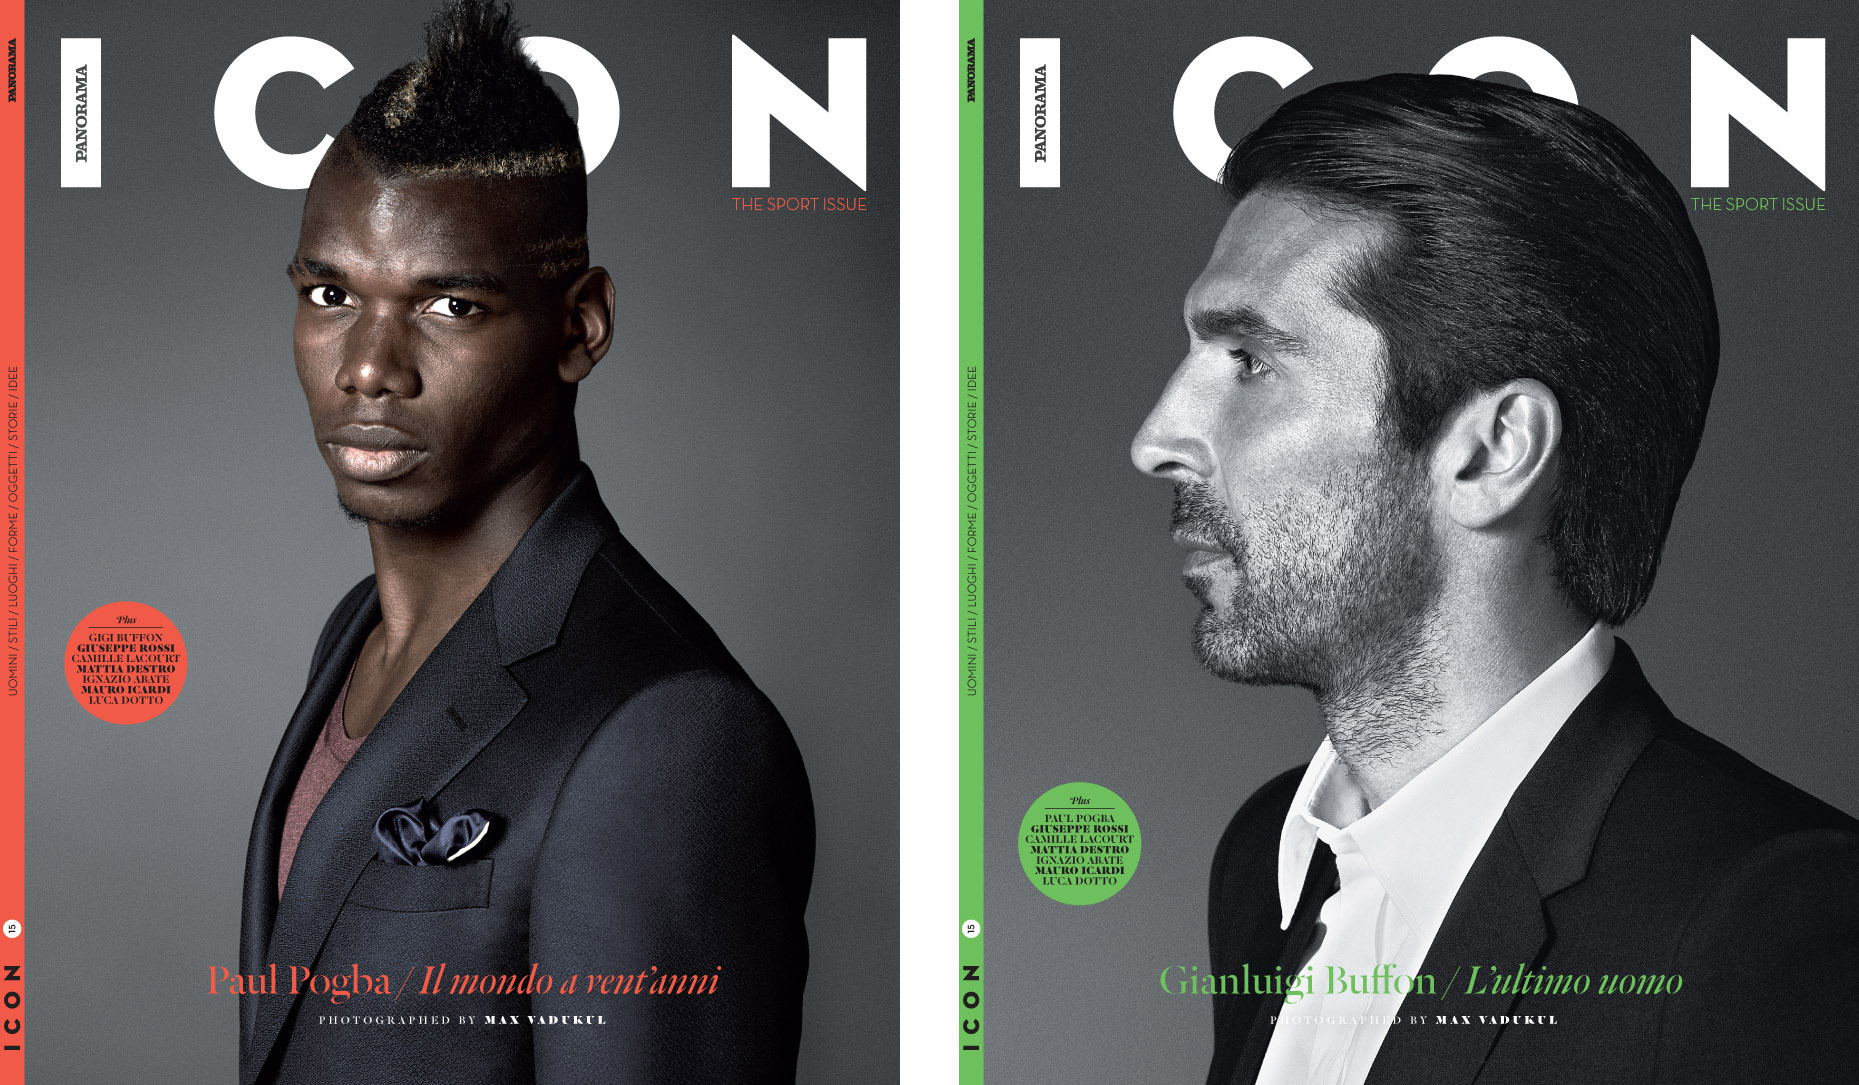 Paul Pogba and Gianluigi Buffon